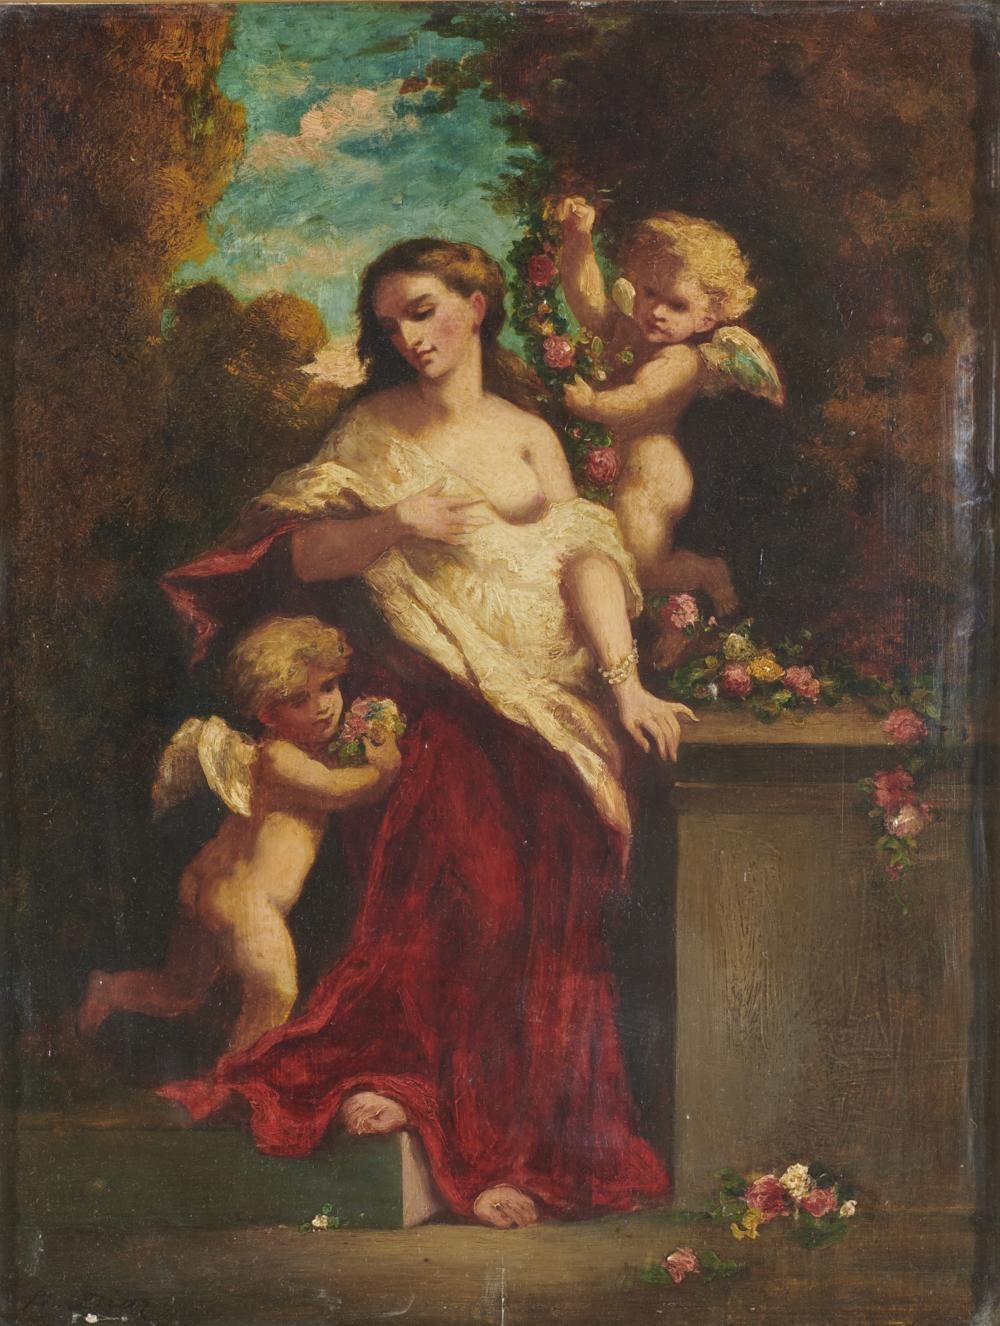 NARCISSE VIRGILE DIAZ de la PENA, (French, 1808-1876), Woman with Putti, oil on panel, 13 1/2 x 10 1/4 in., frame: 22 1/2 x 19 1/2 in.